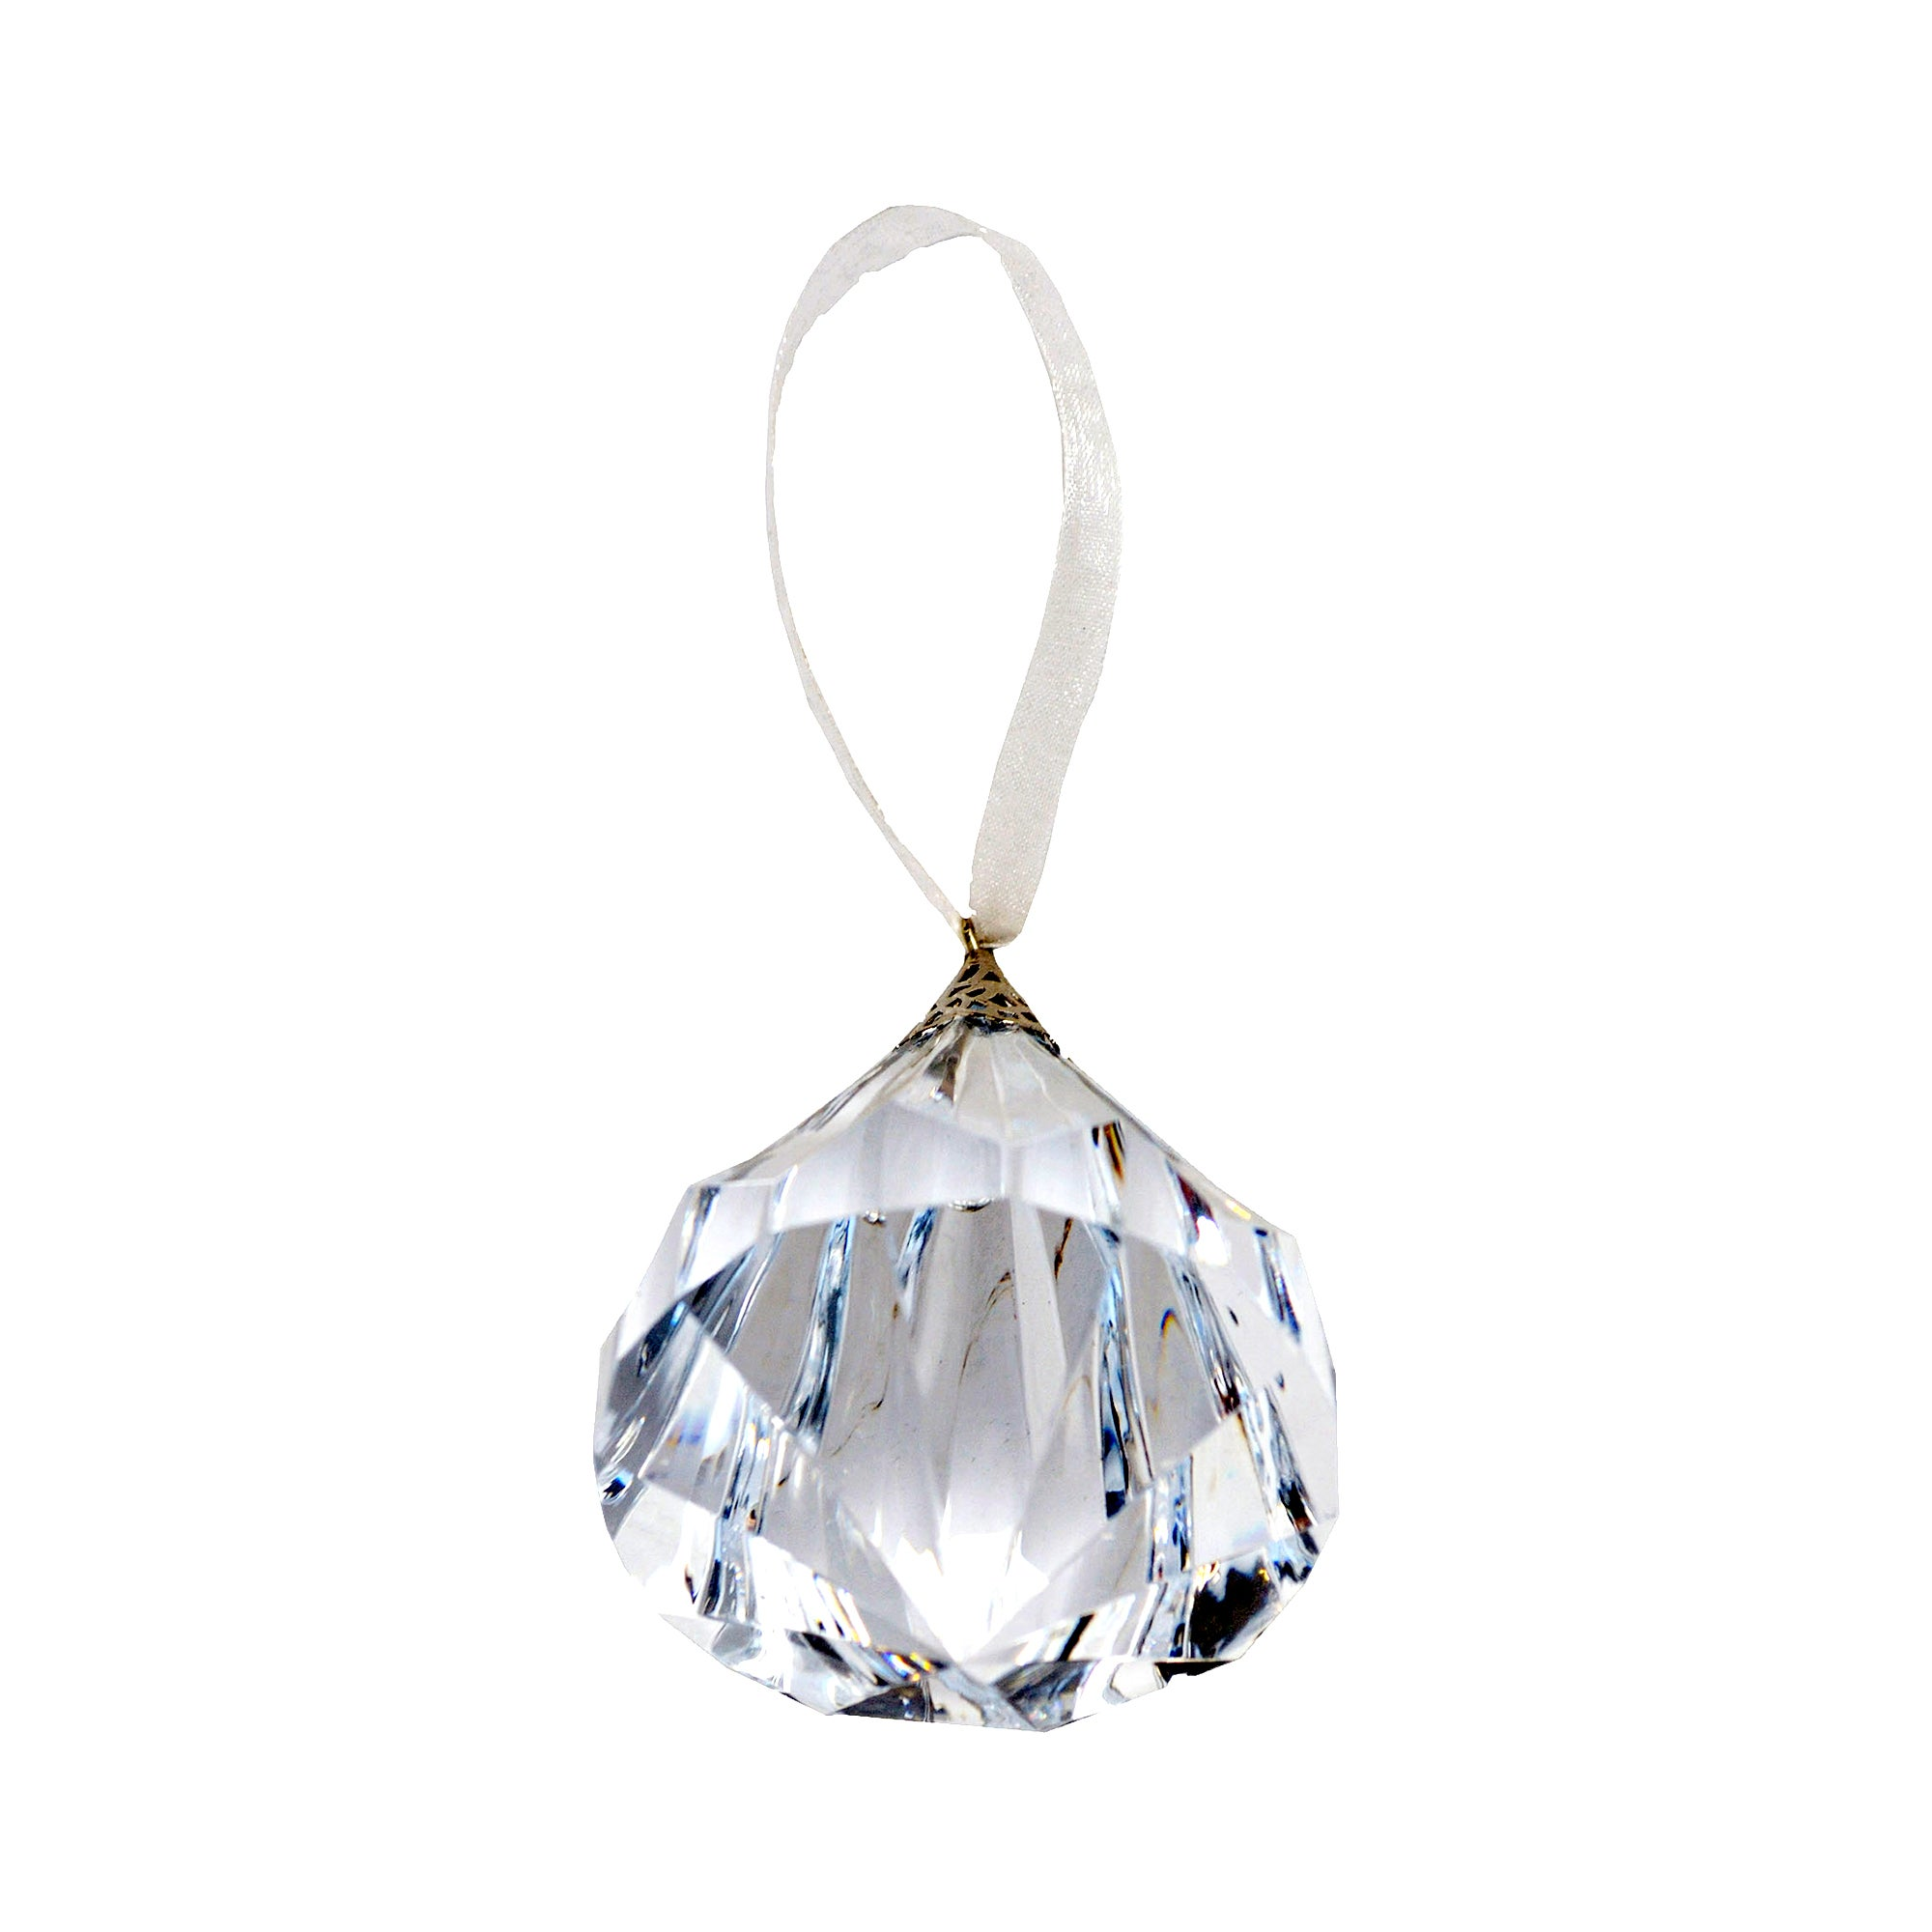 Plum Pudding Collection Hanging Teardrop Jewel